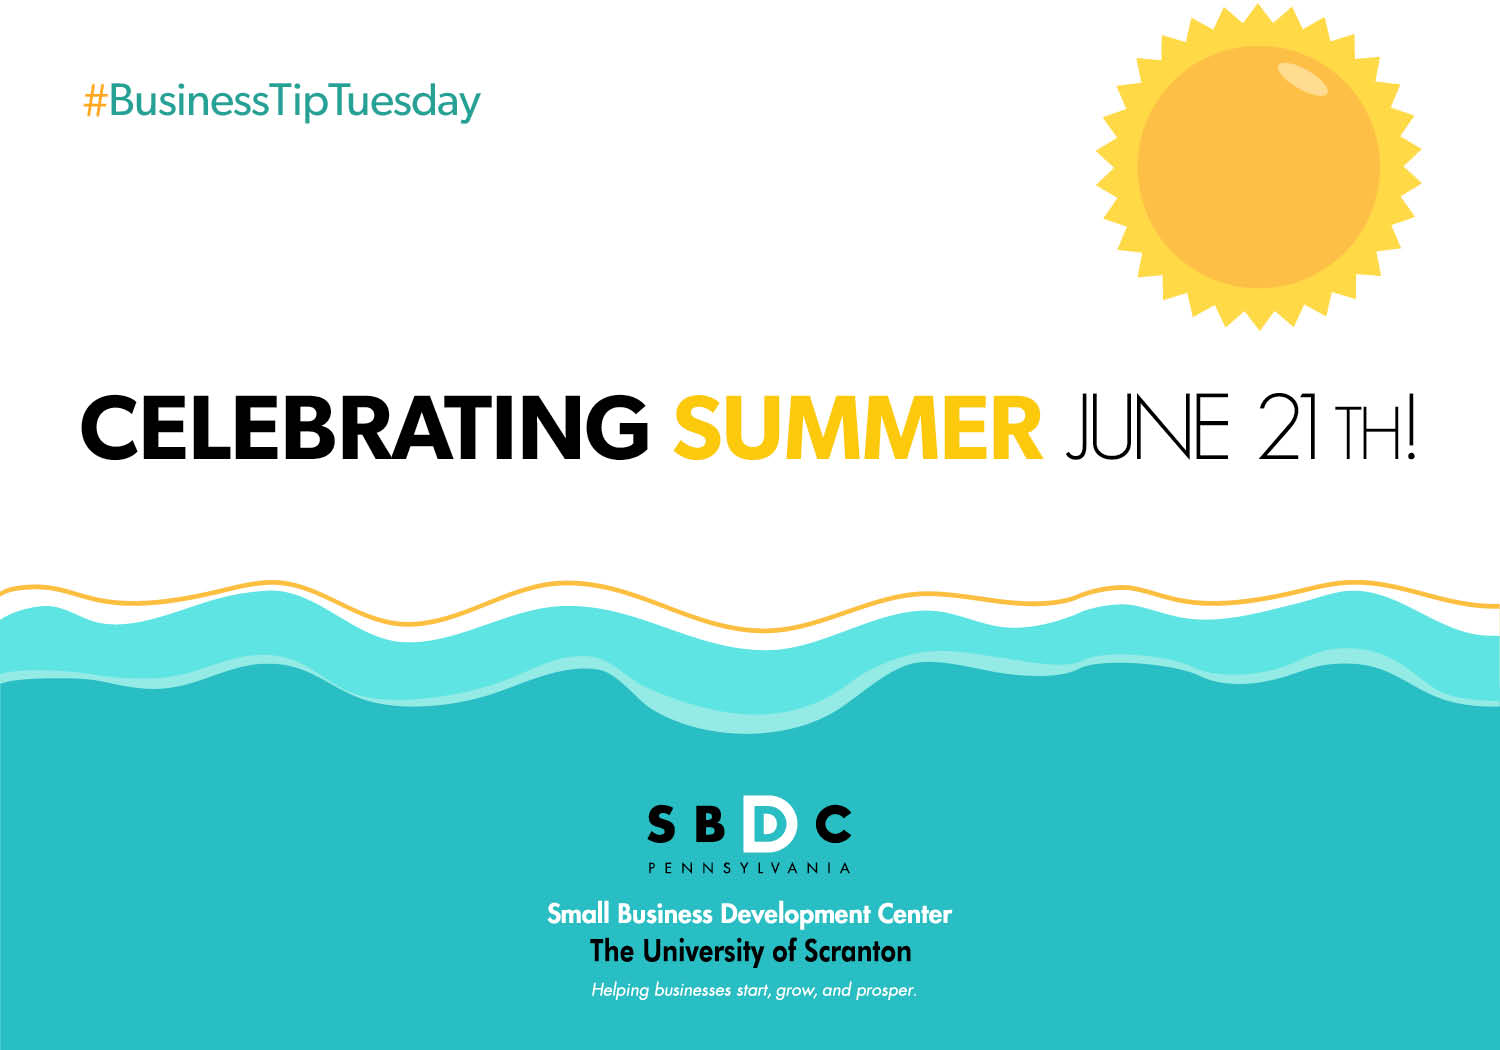 #BusinessTipTuesday – Celebrating Summer June 21th